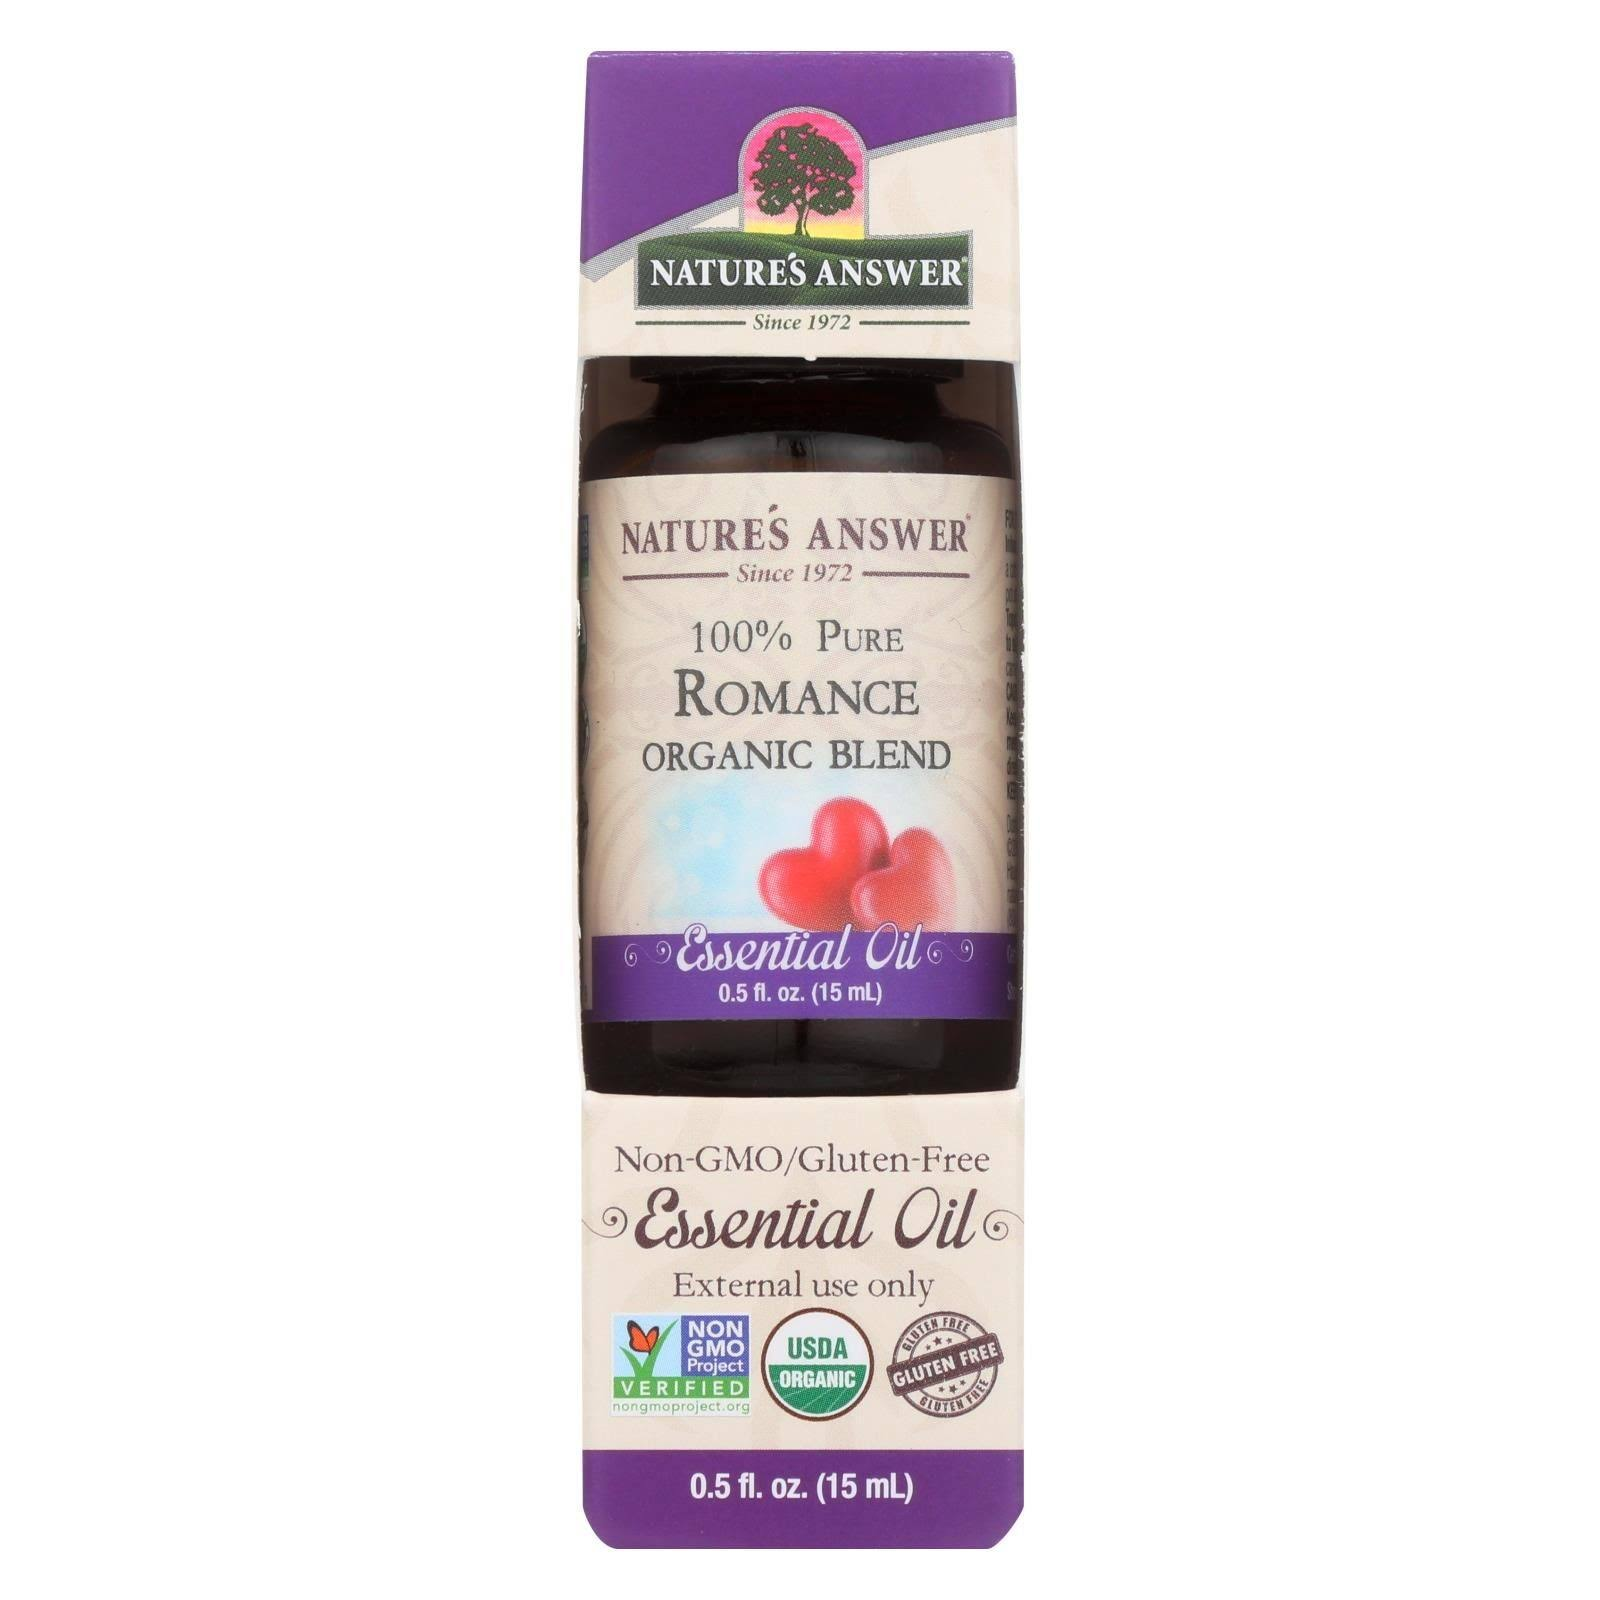 Nature's Answer - Organic Essential Oil Blend - Romance - 0.5 oz.